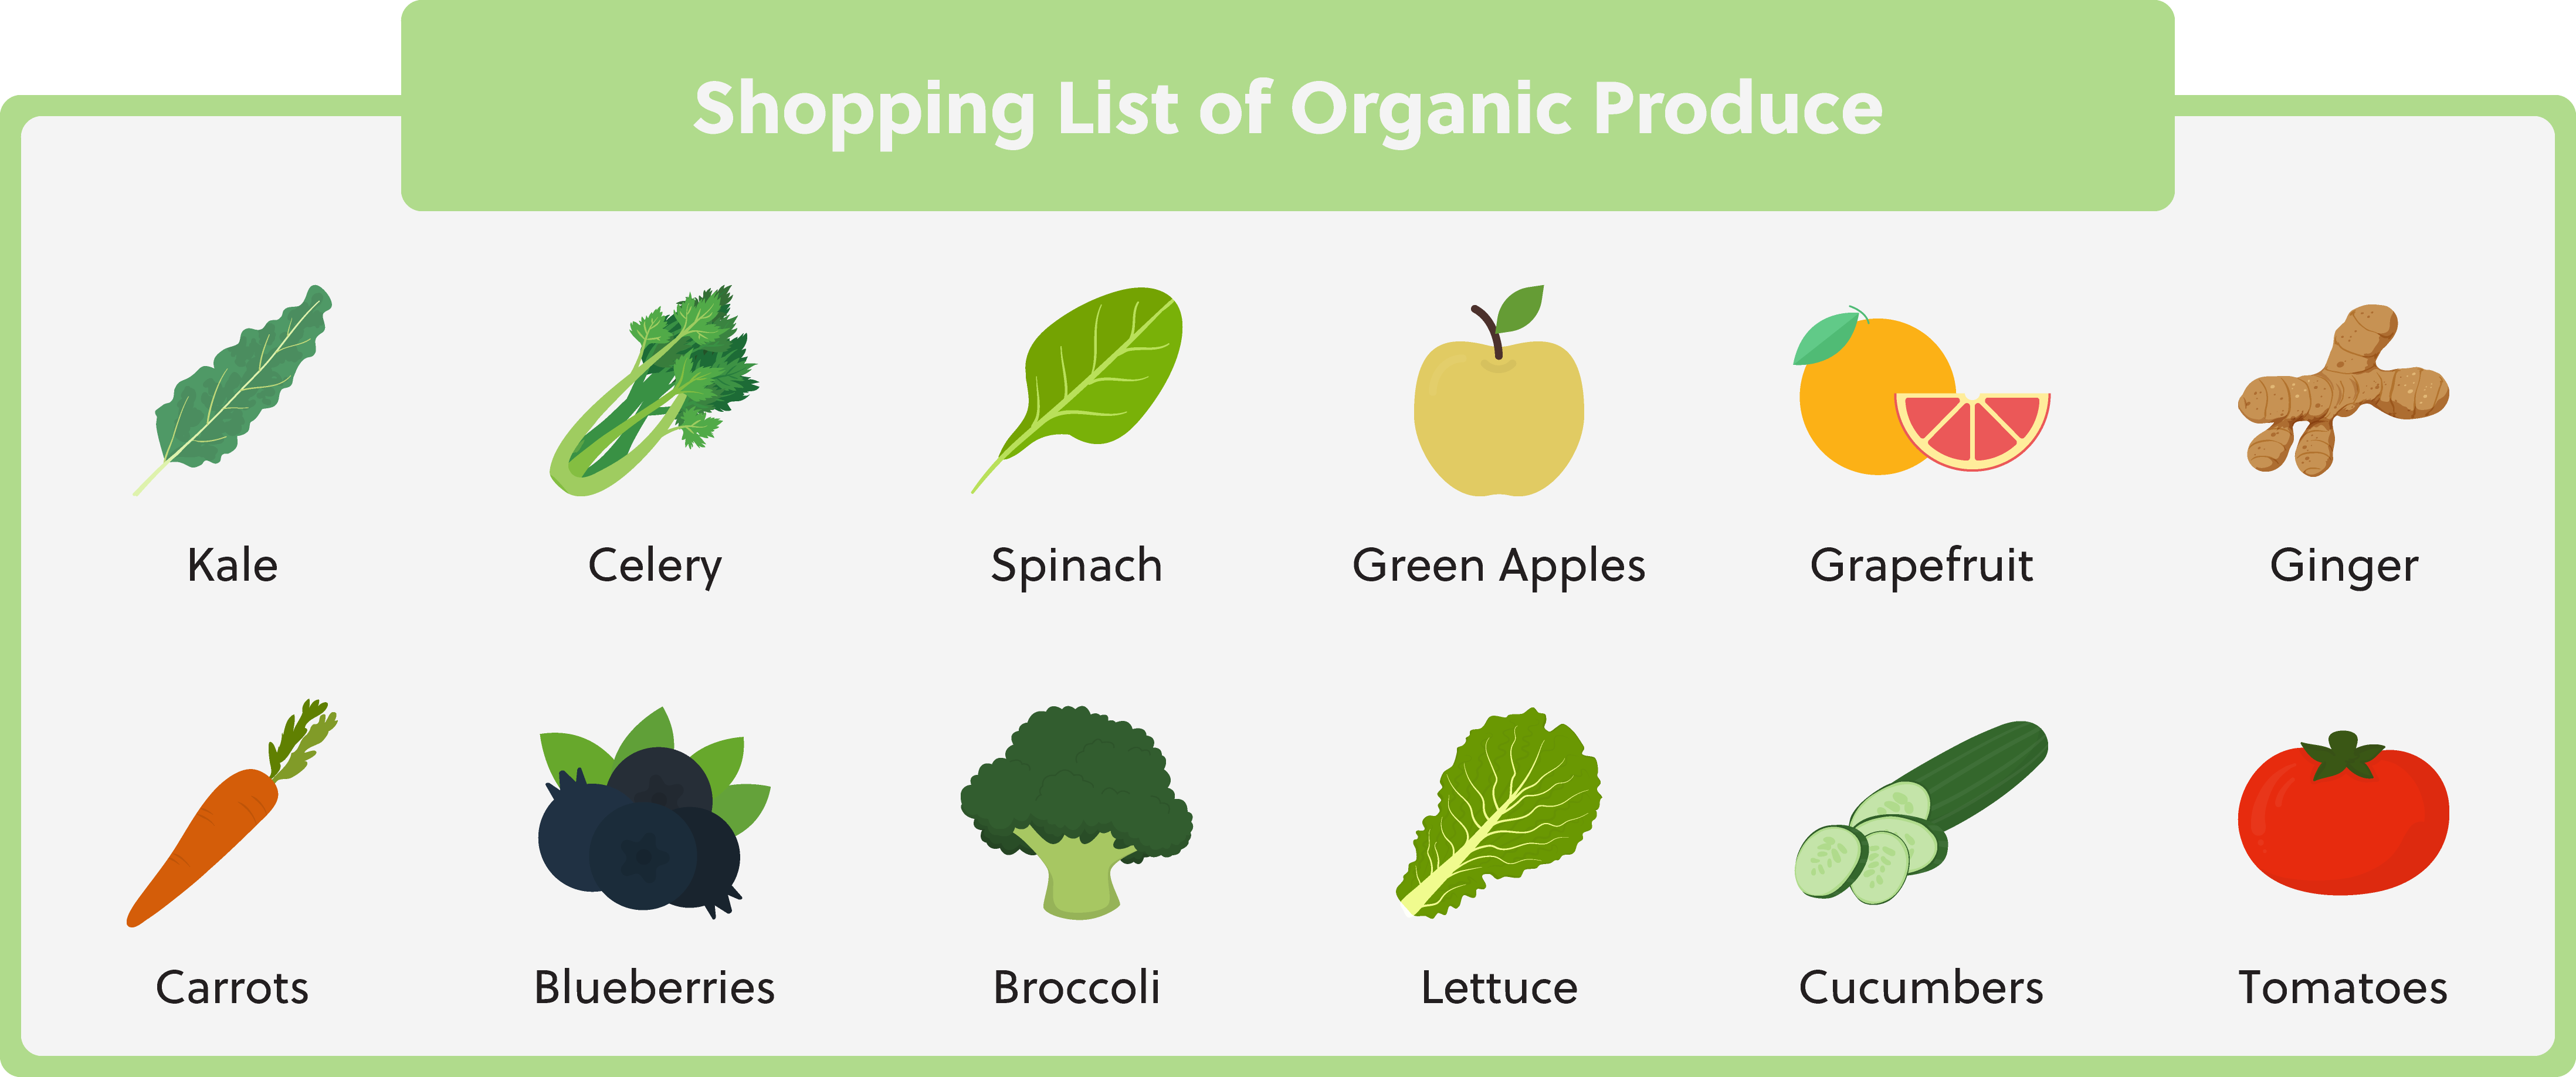 shopping-list-of-organic-produce.png